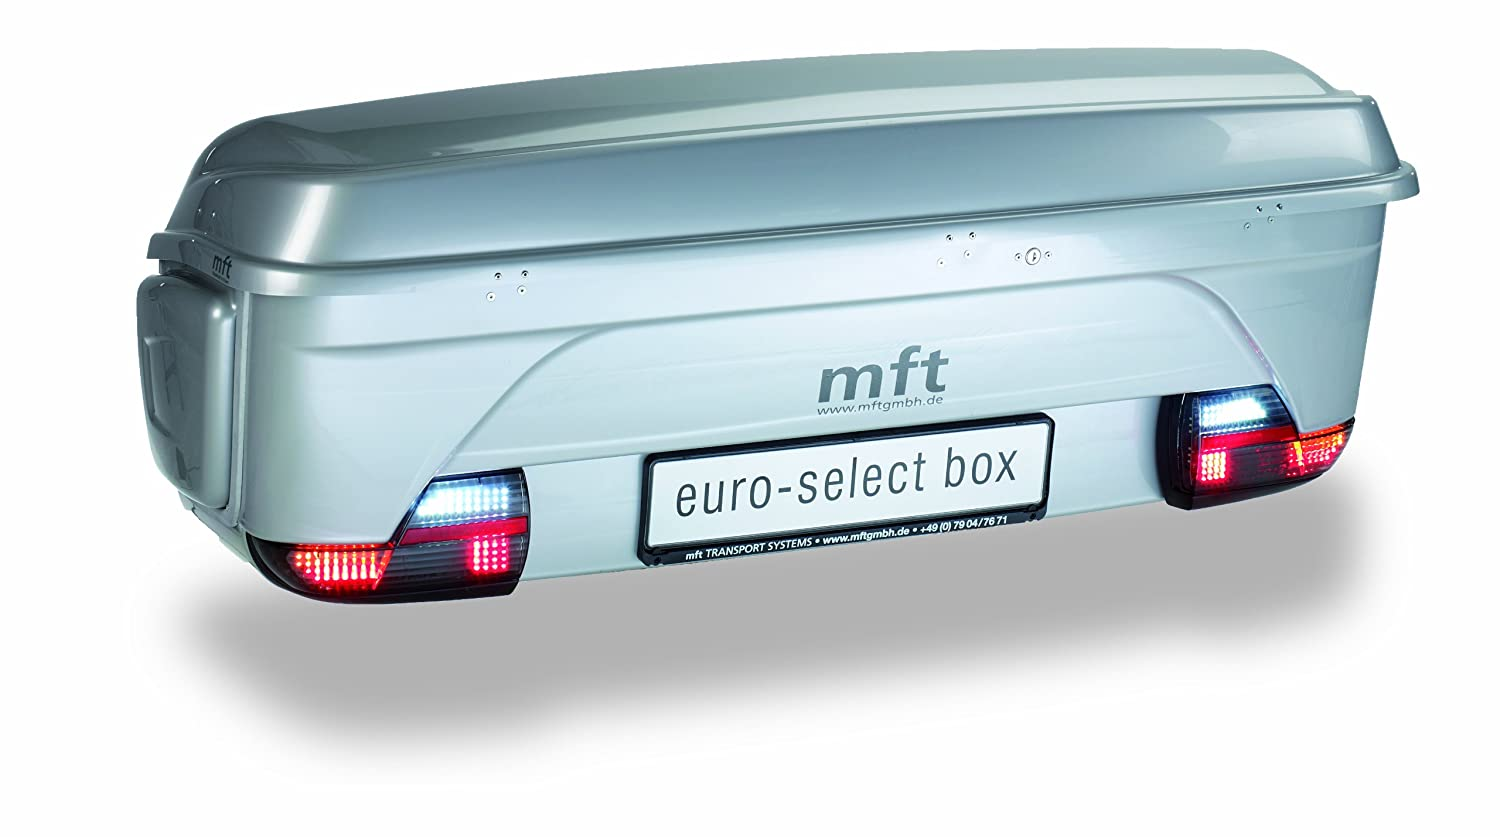 MFT 1503 Euro-Select Box Test